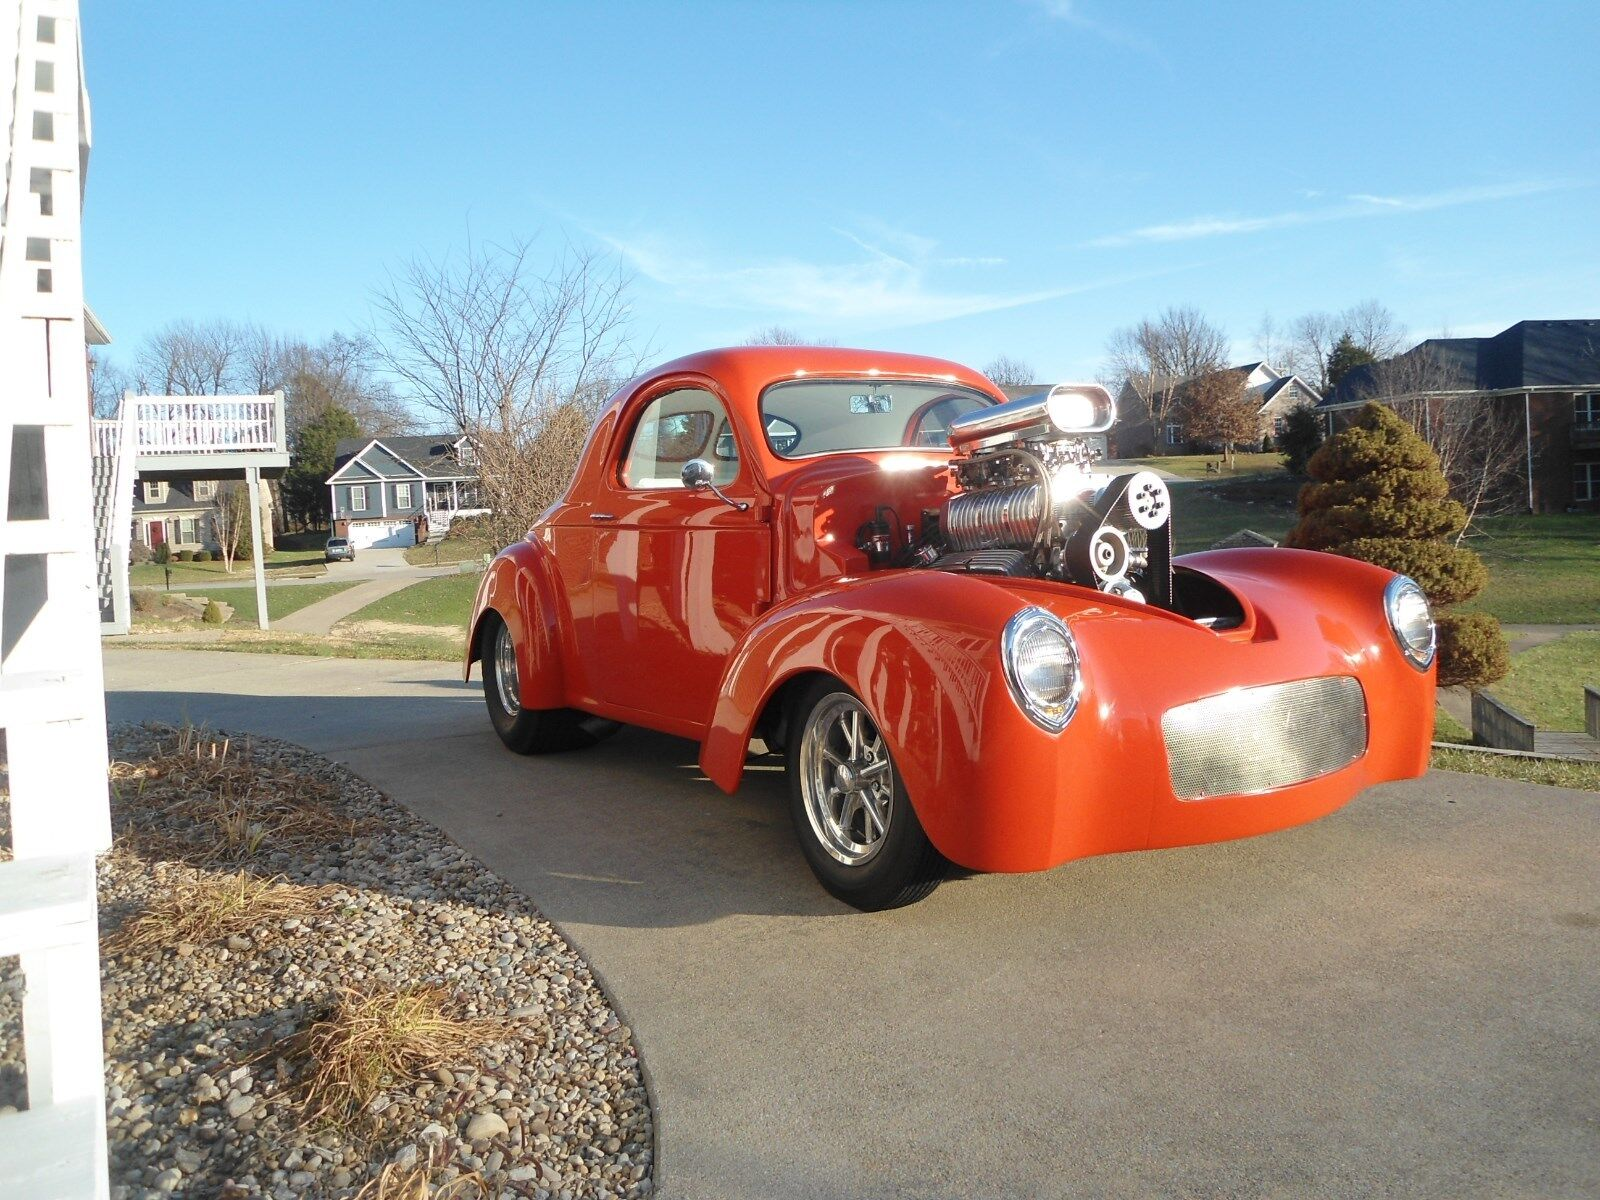 1941 Willys 439 : 1941 Willy's Coupe Gasser, 383ci with b&m blower